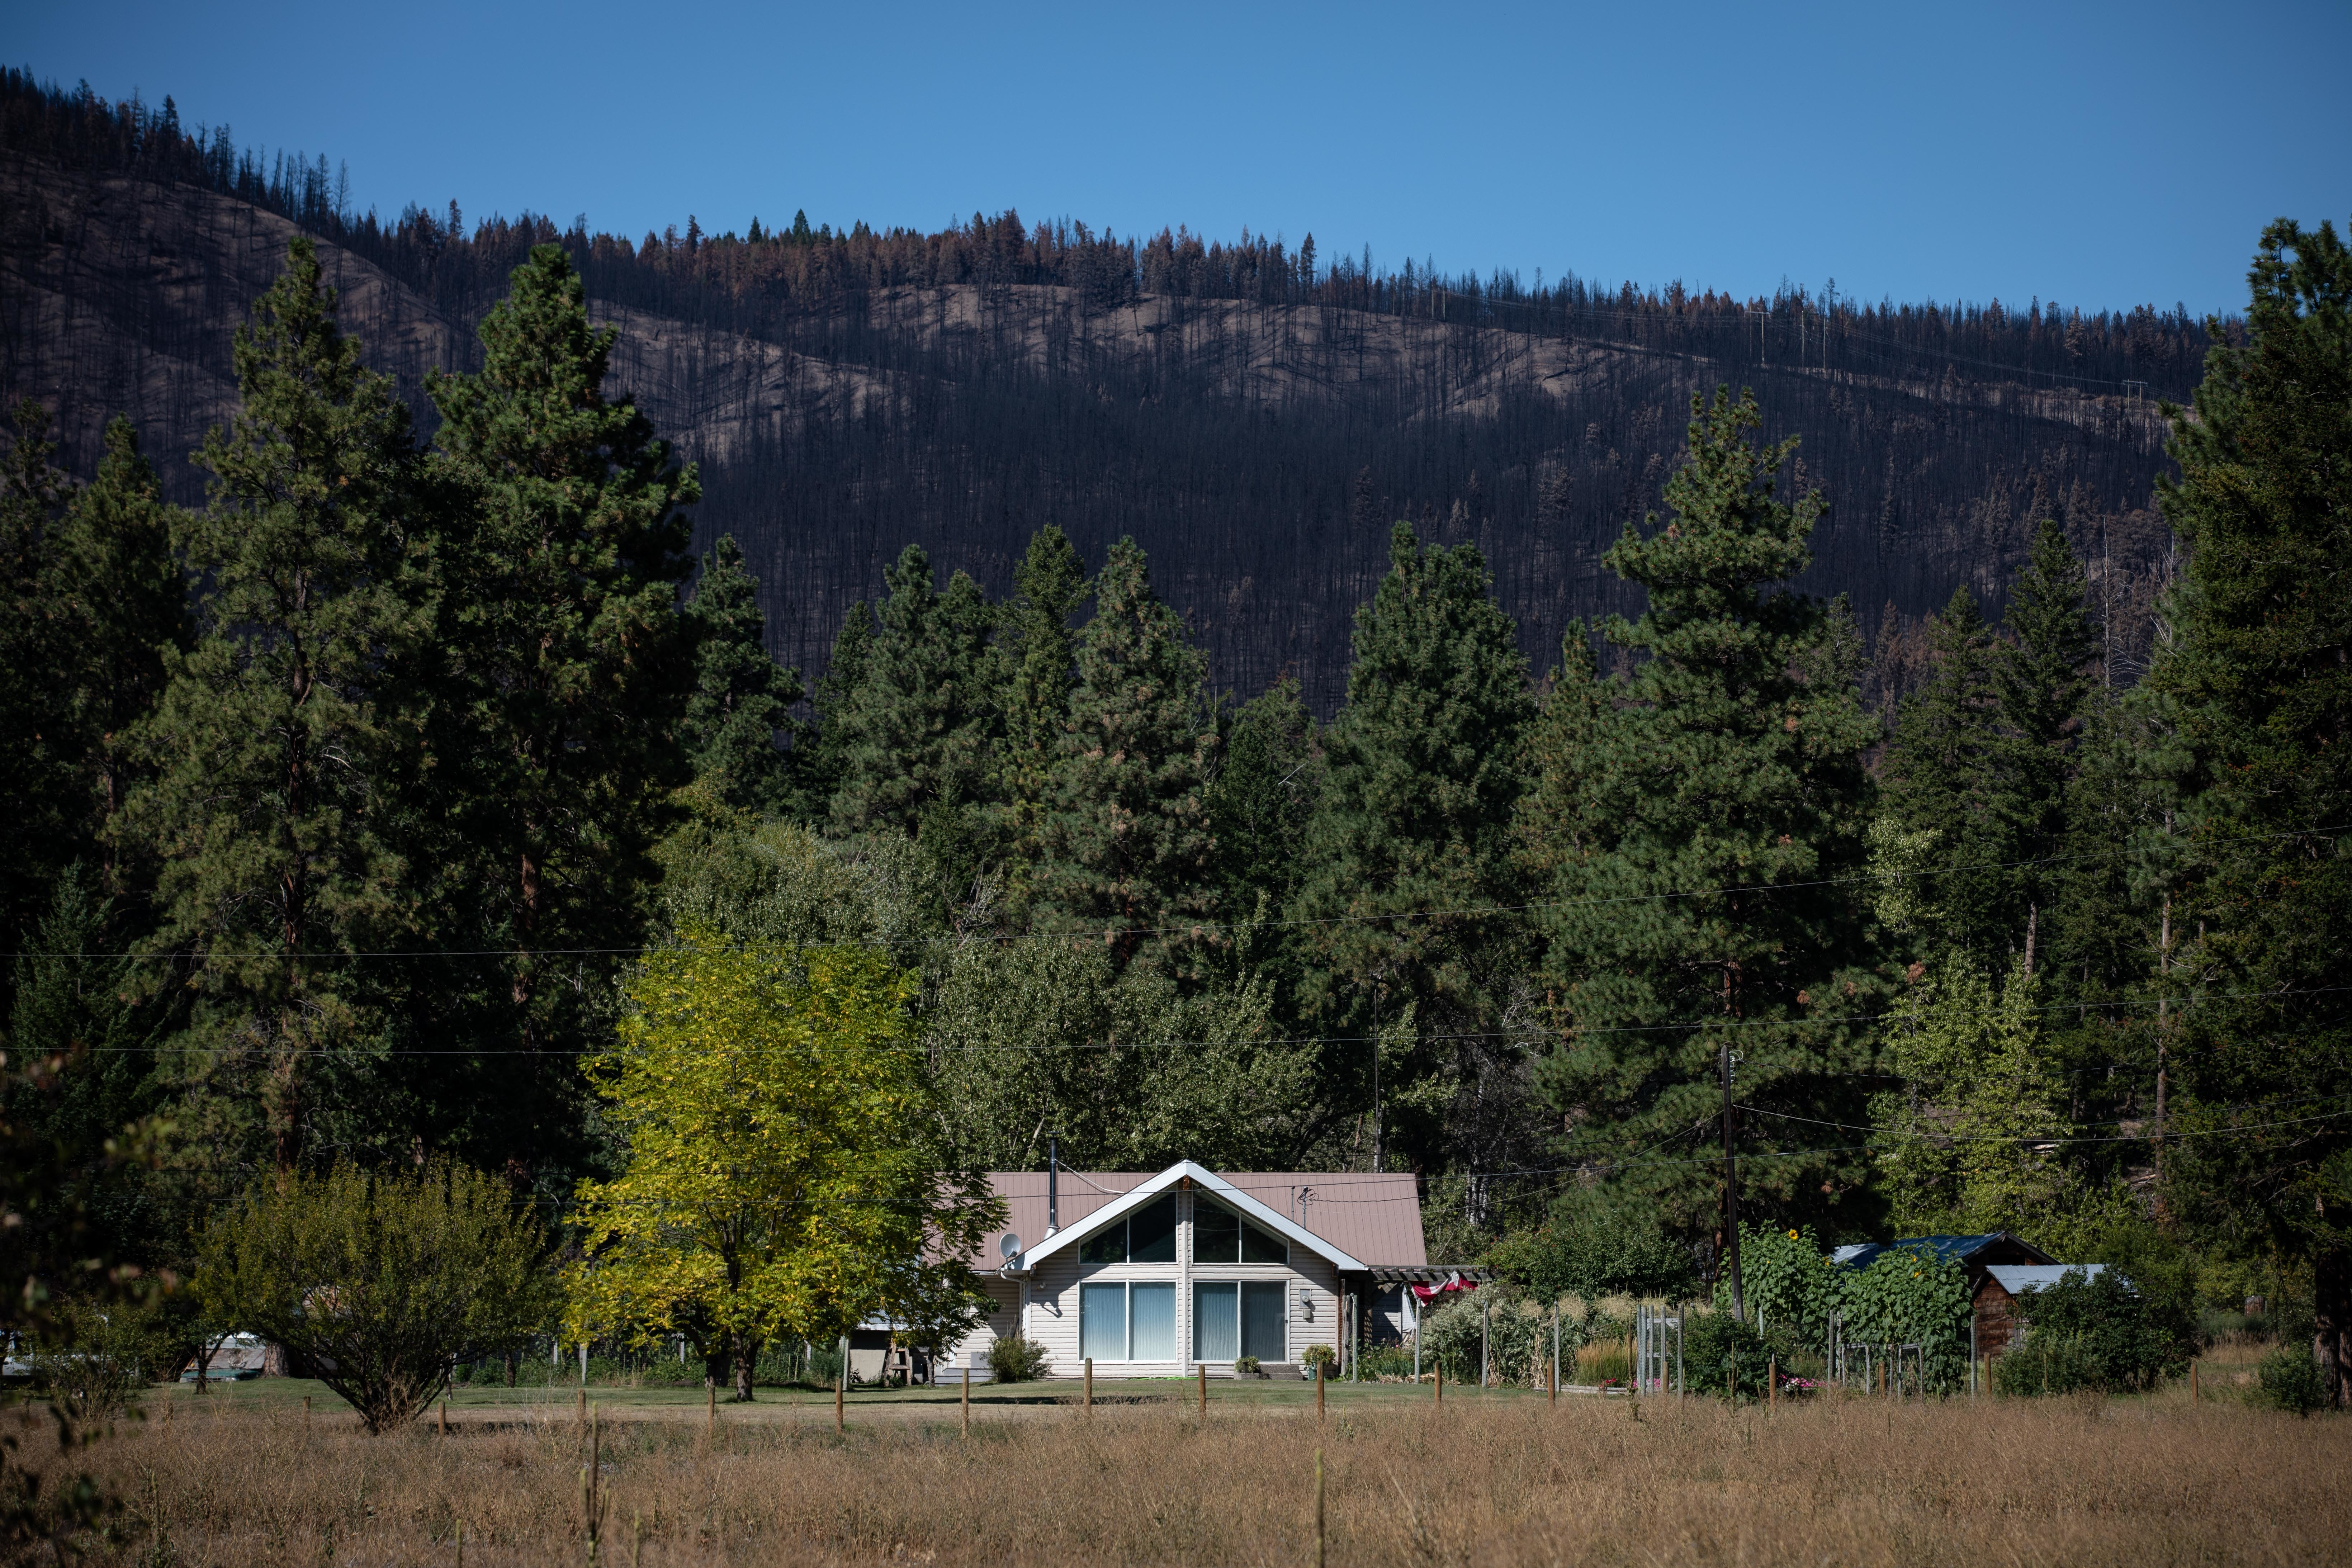 A house sits in front of a hill burned by the White Rock Lake wildfire near Falkland, B.C., on Sept. 2. (Maggie MacPherson/CBC)